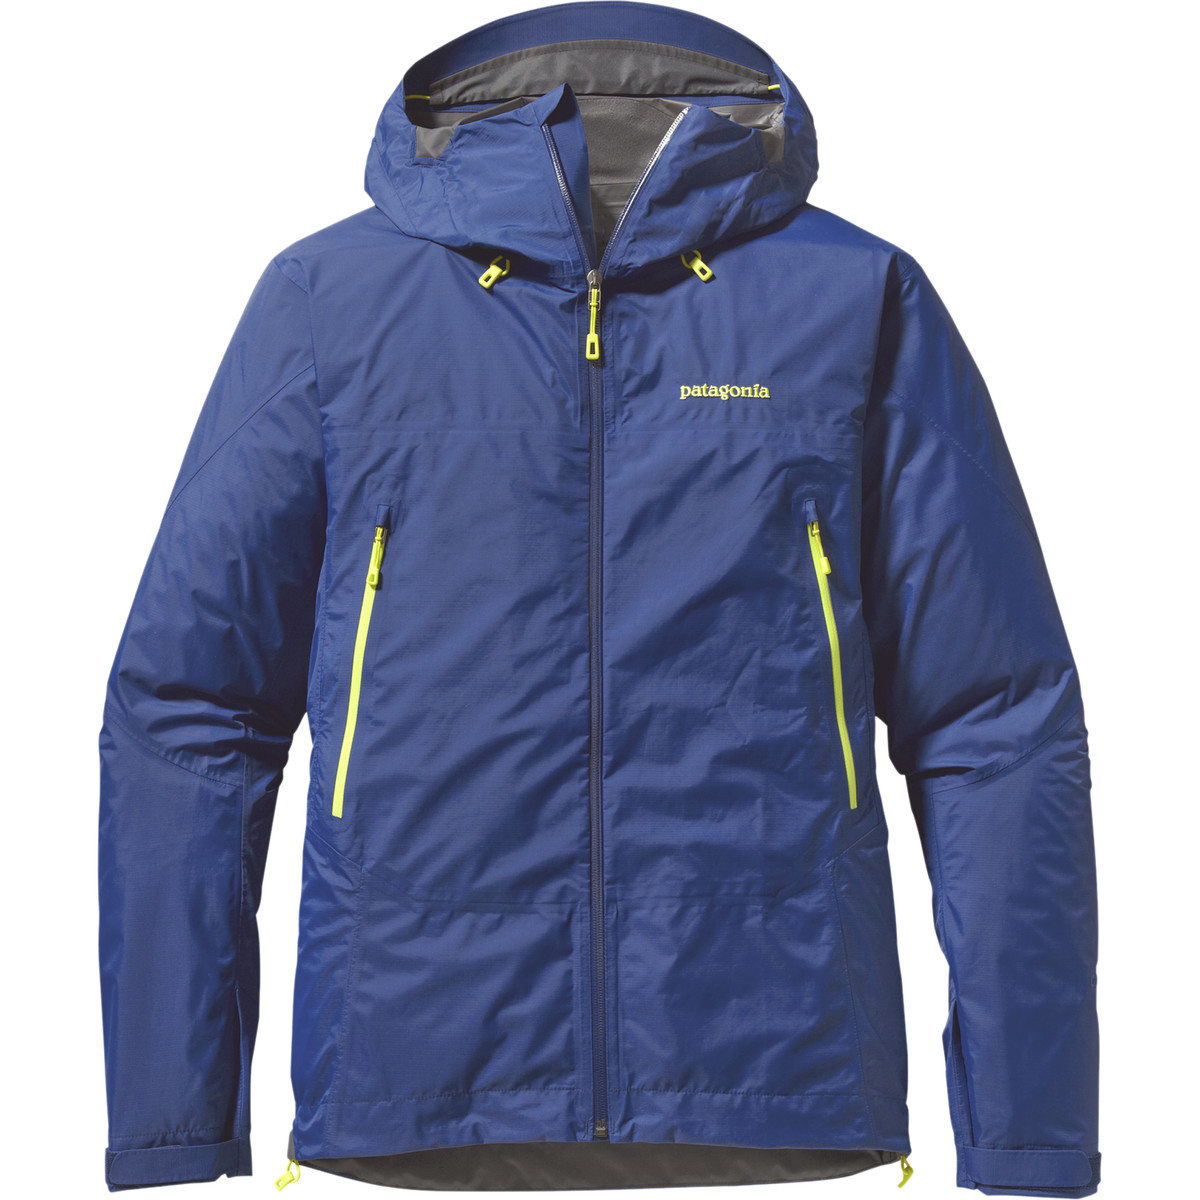 Patagonia Supercell Jacket